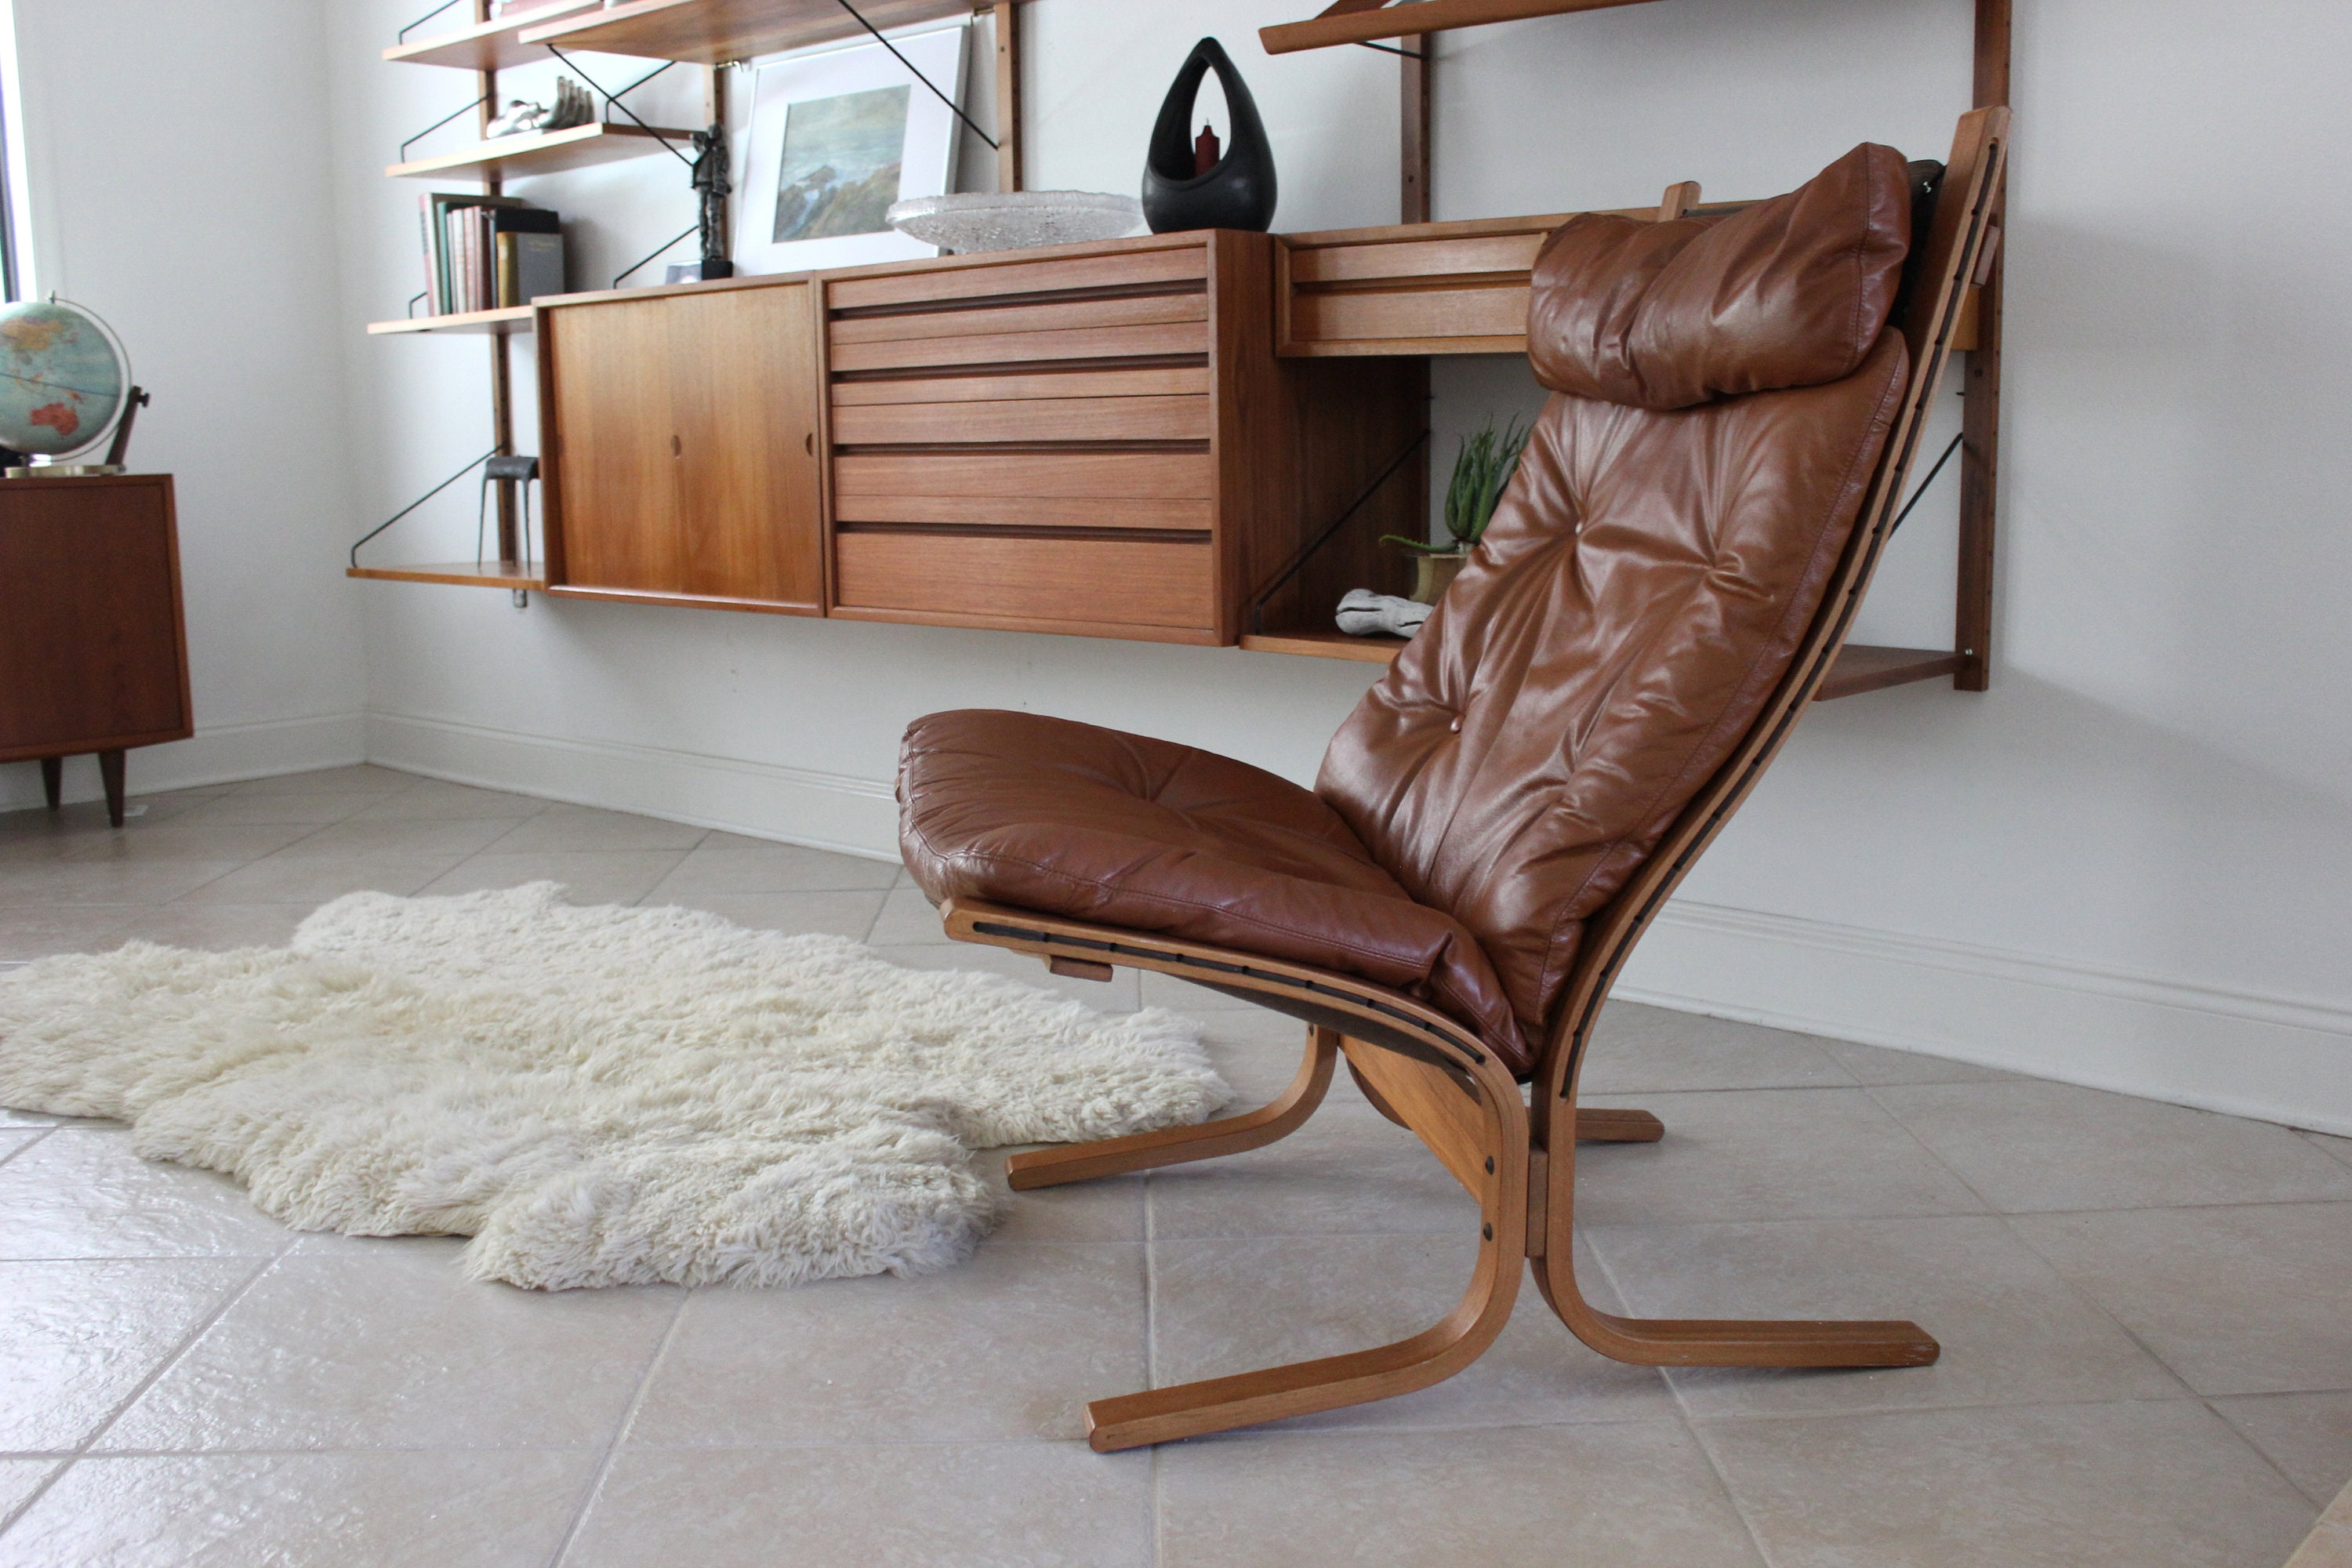 Peachy Mid Century Modern Westnofa Tan Leather Siesta Chair By Gmtry Best Dining Table And Chair Ideas Images Gmtryco